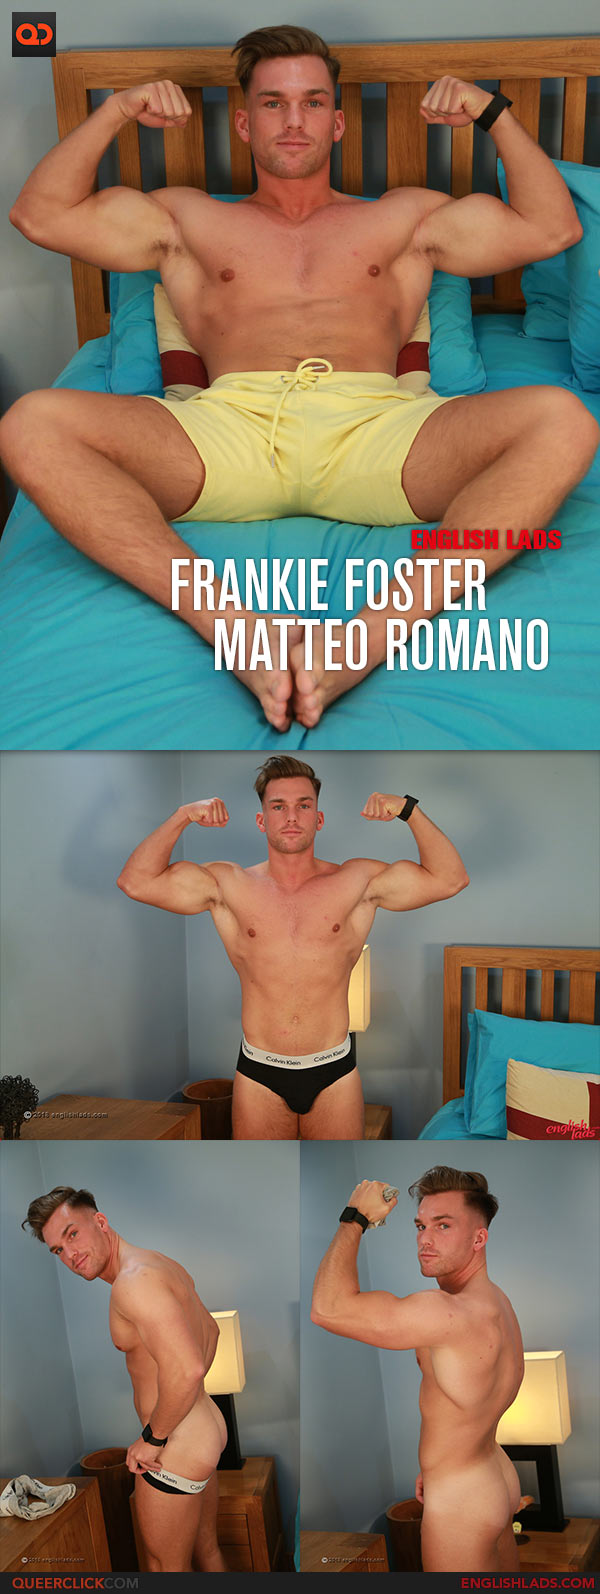 English Lads: Muscular Hunk Frankie Foster Serviced by Matteo Romano